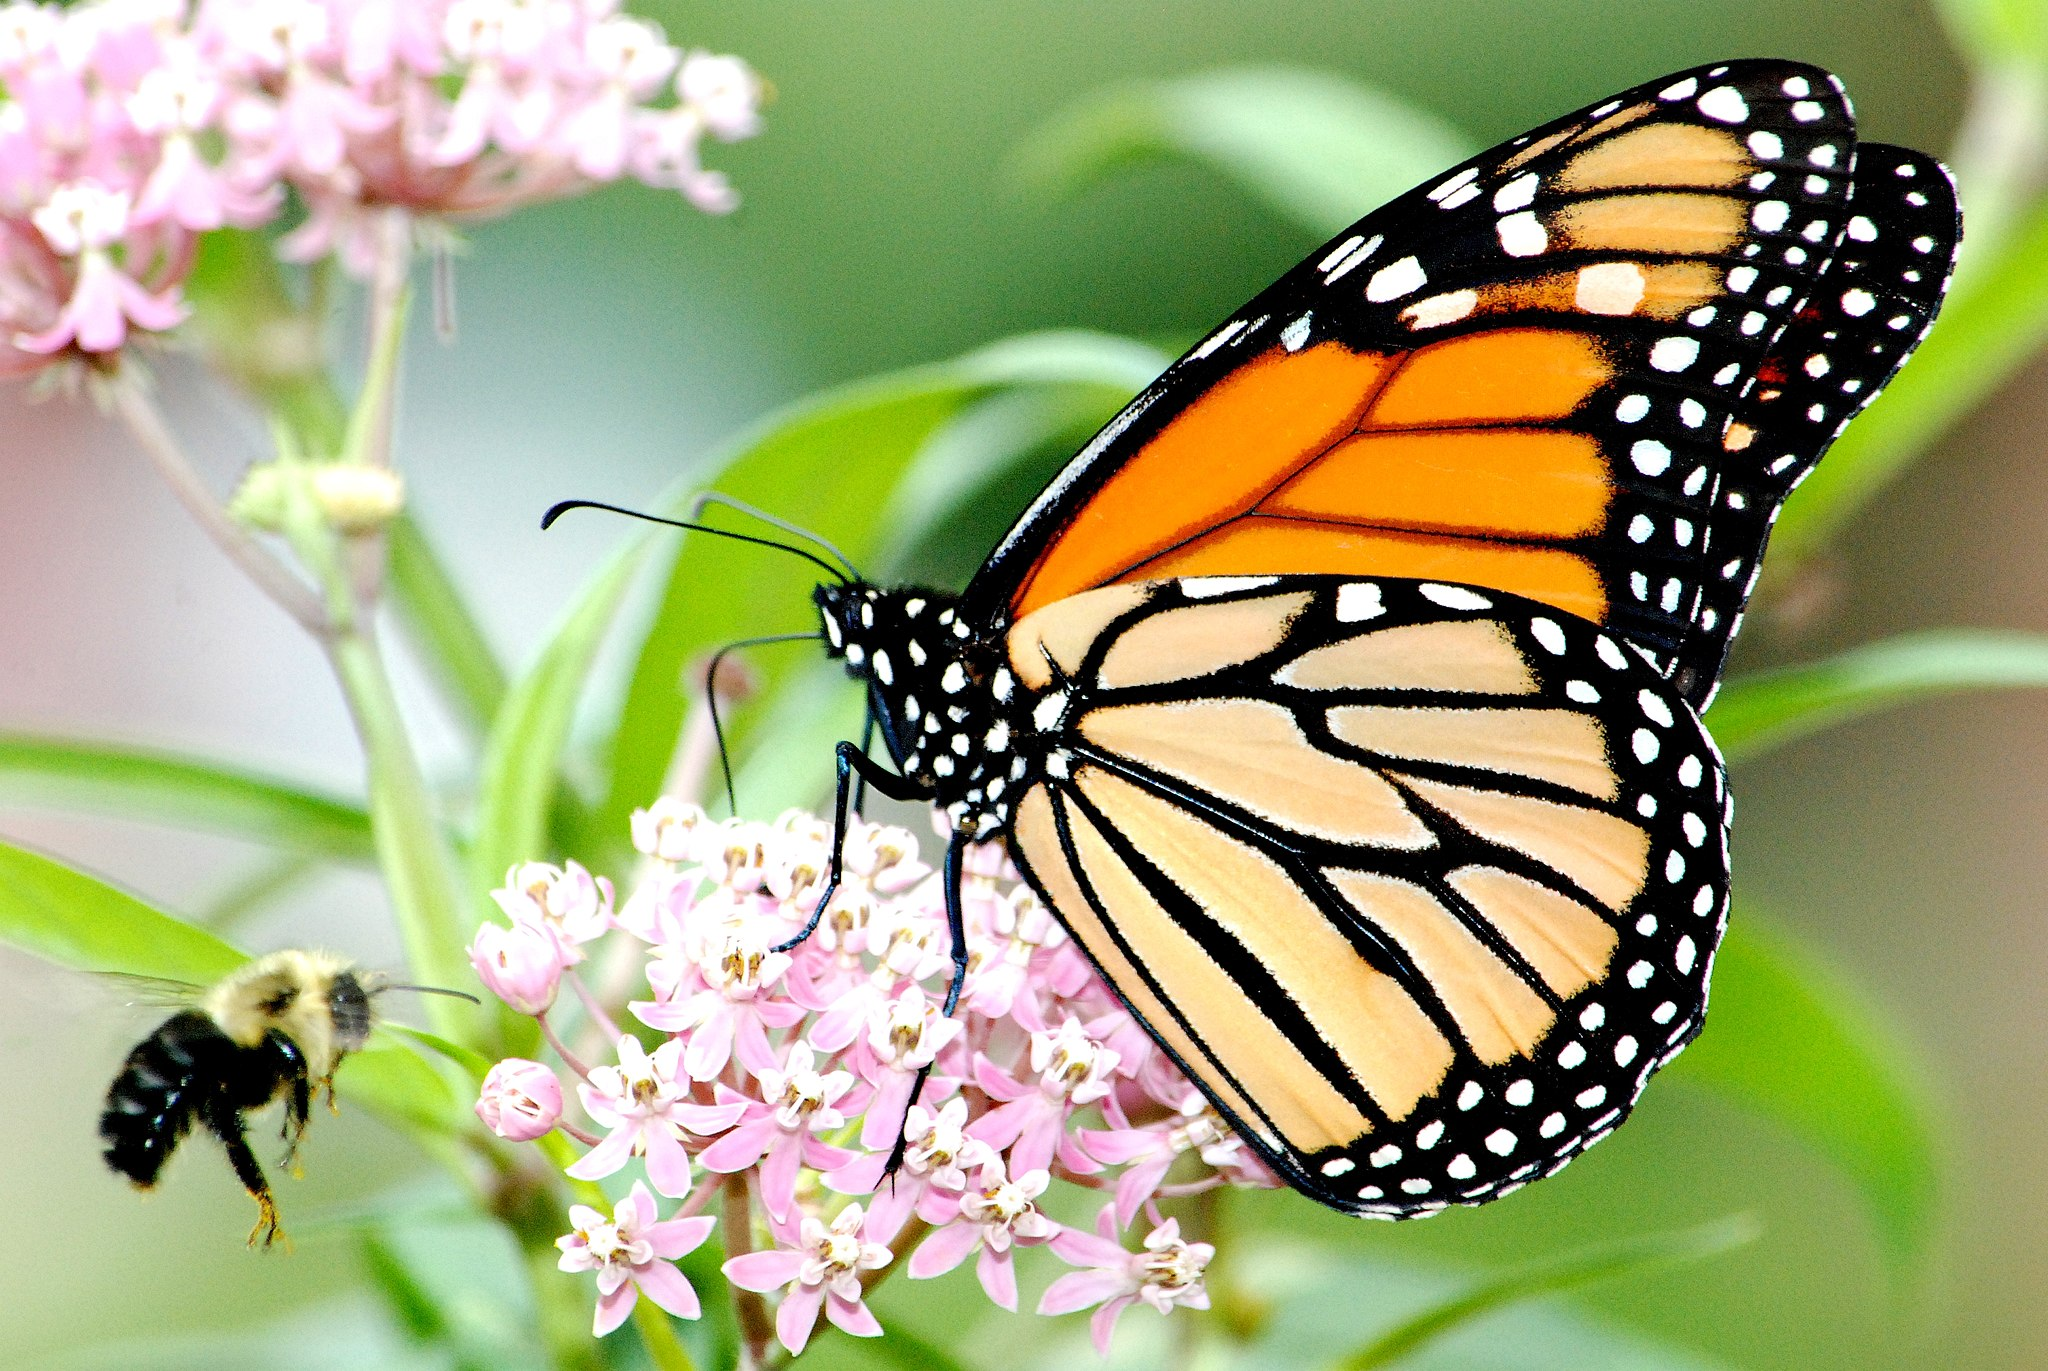 Image shows a monarch butterfly feeding from milkweed blossoms.